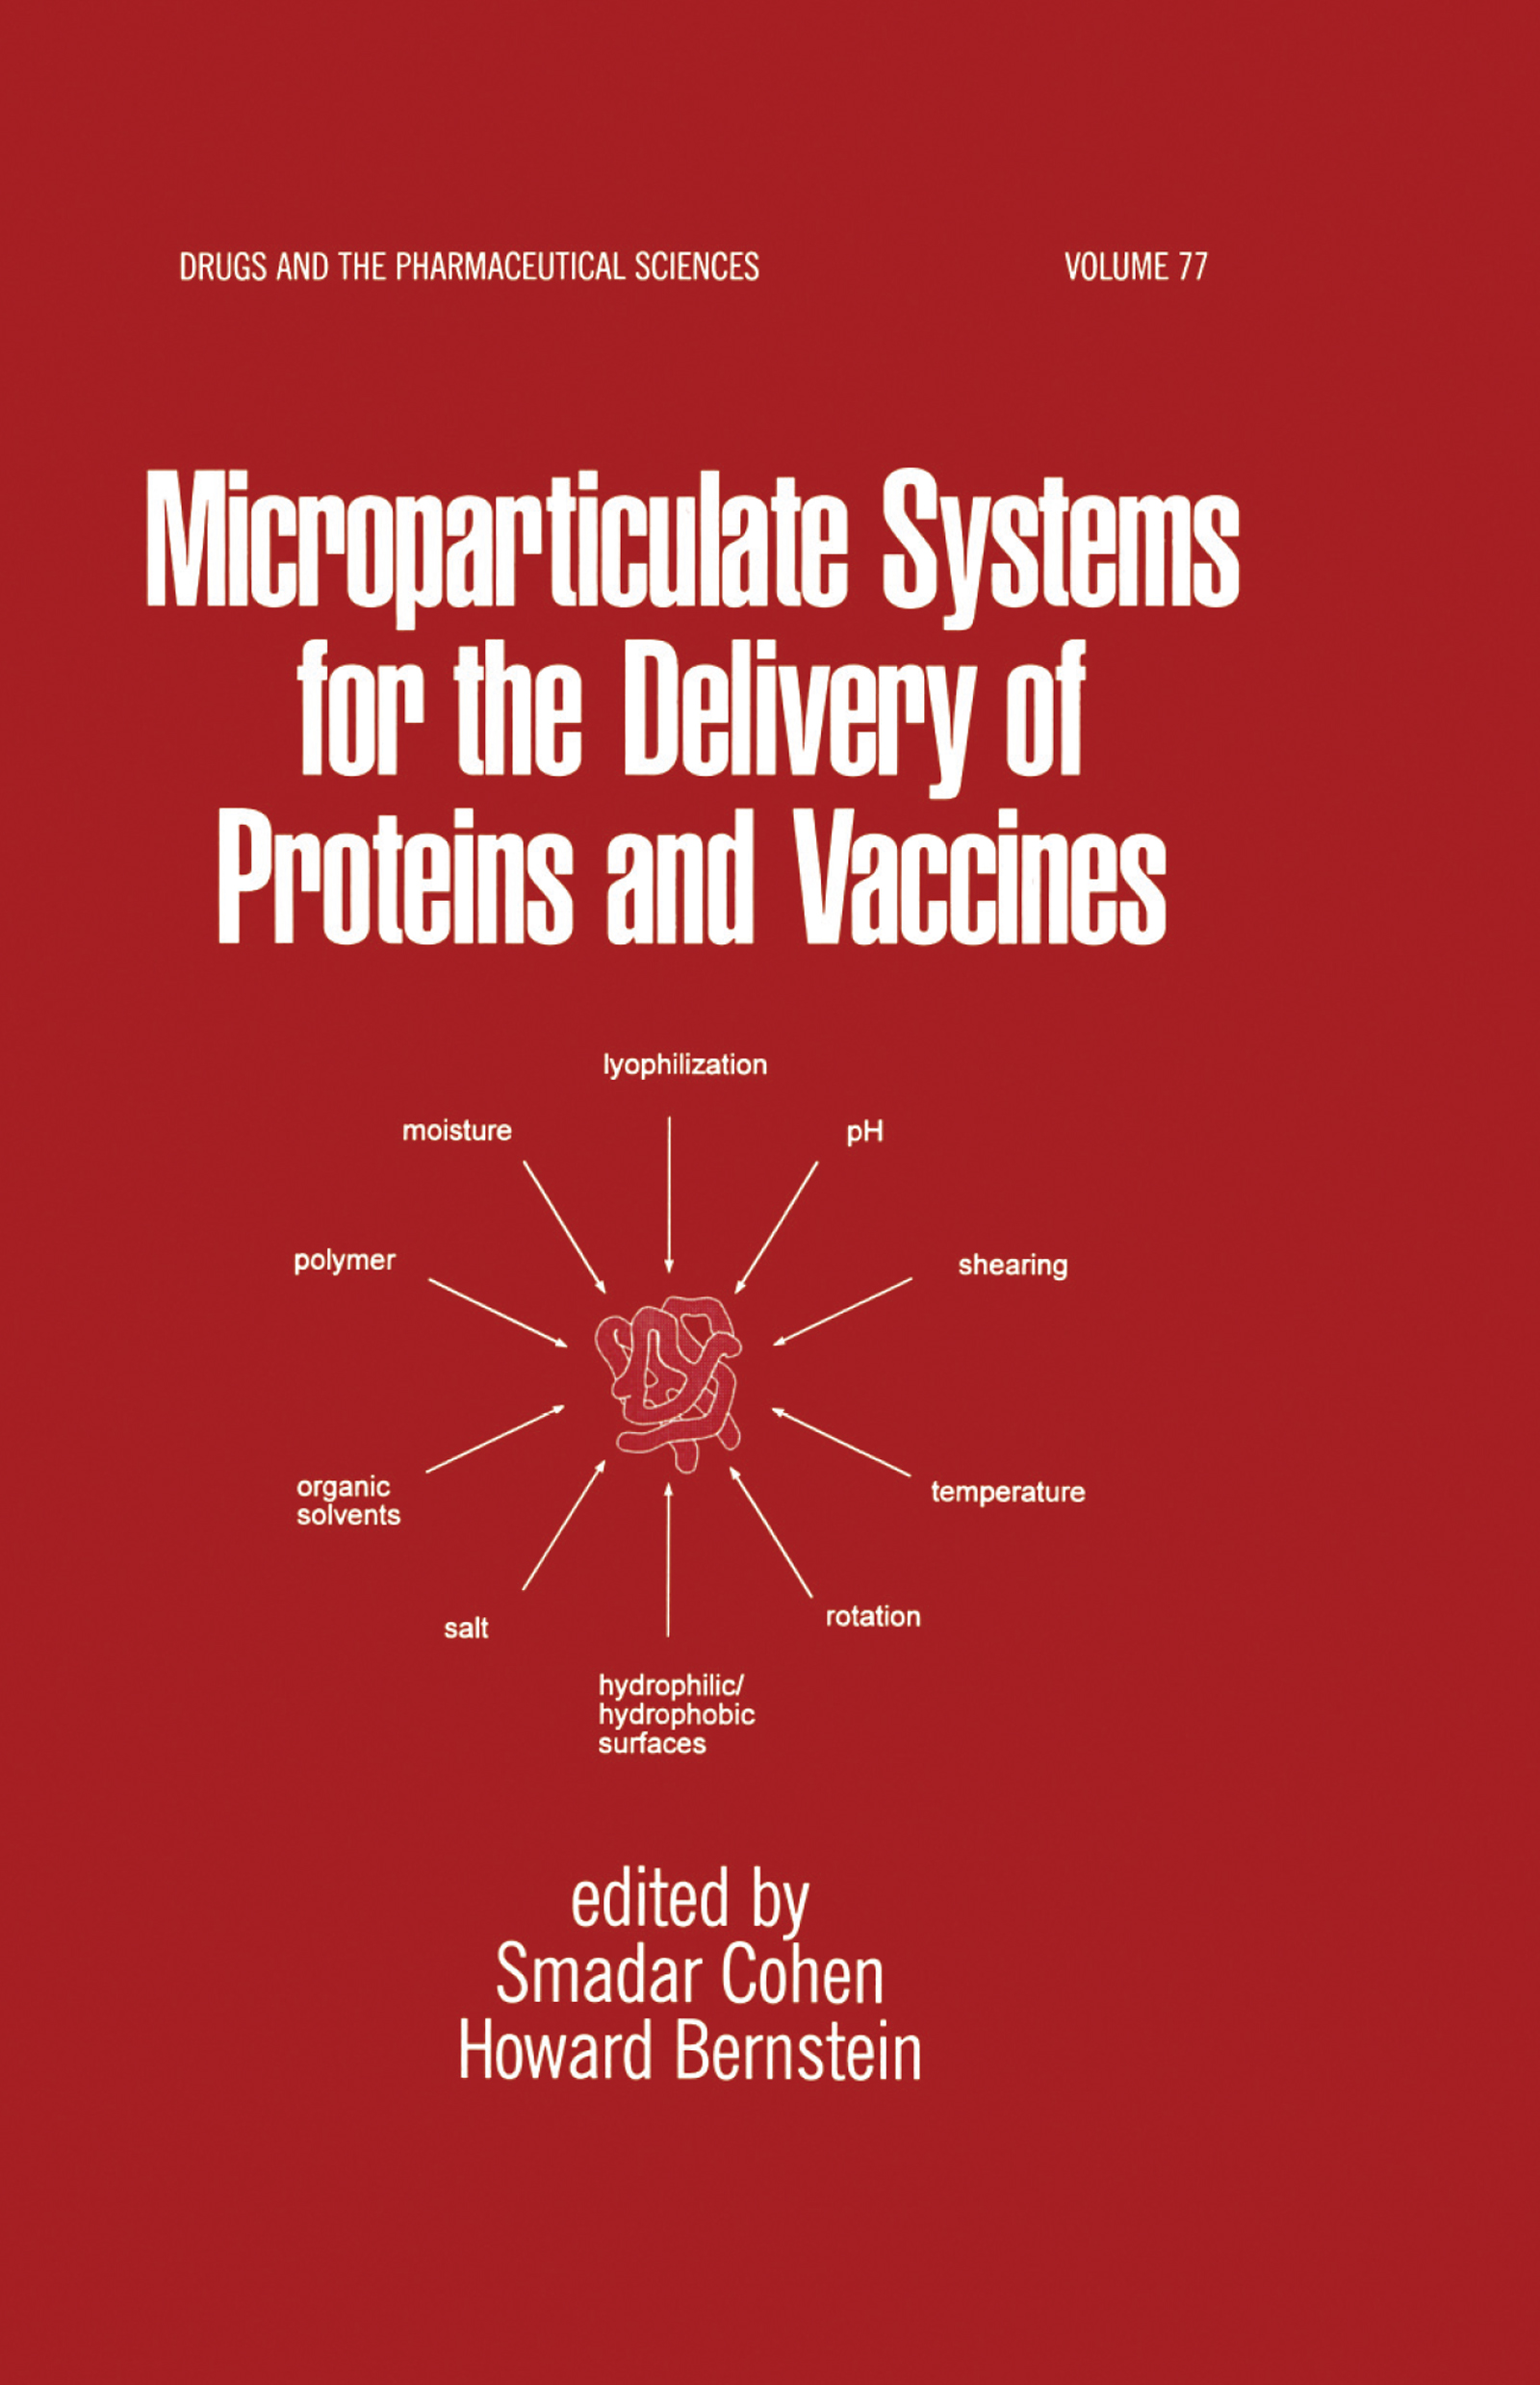 Microparticulate Systems for the Delivery of Proteins and Vaccines